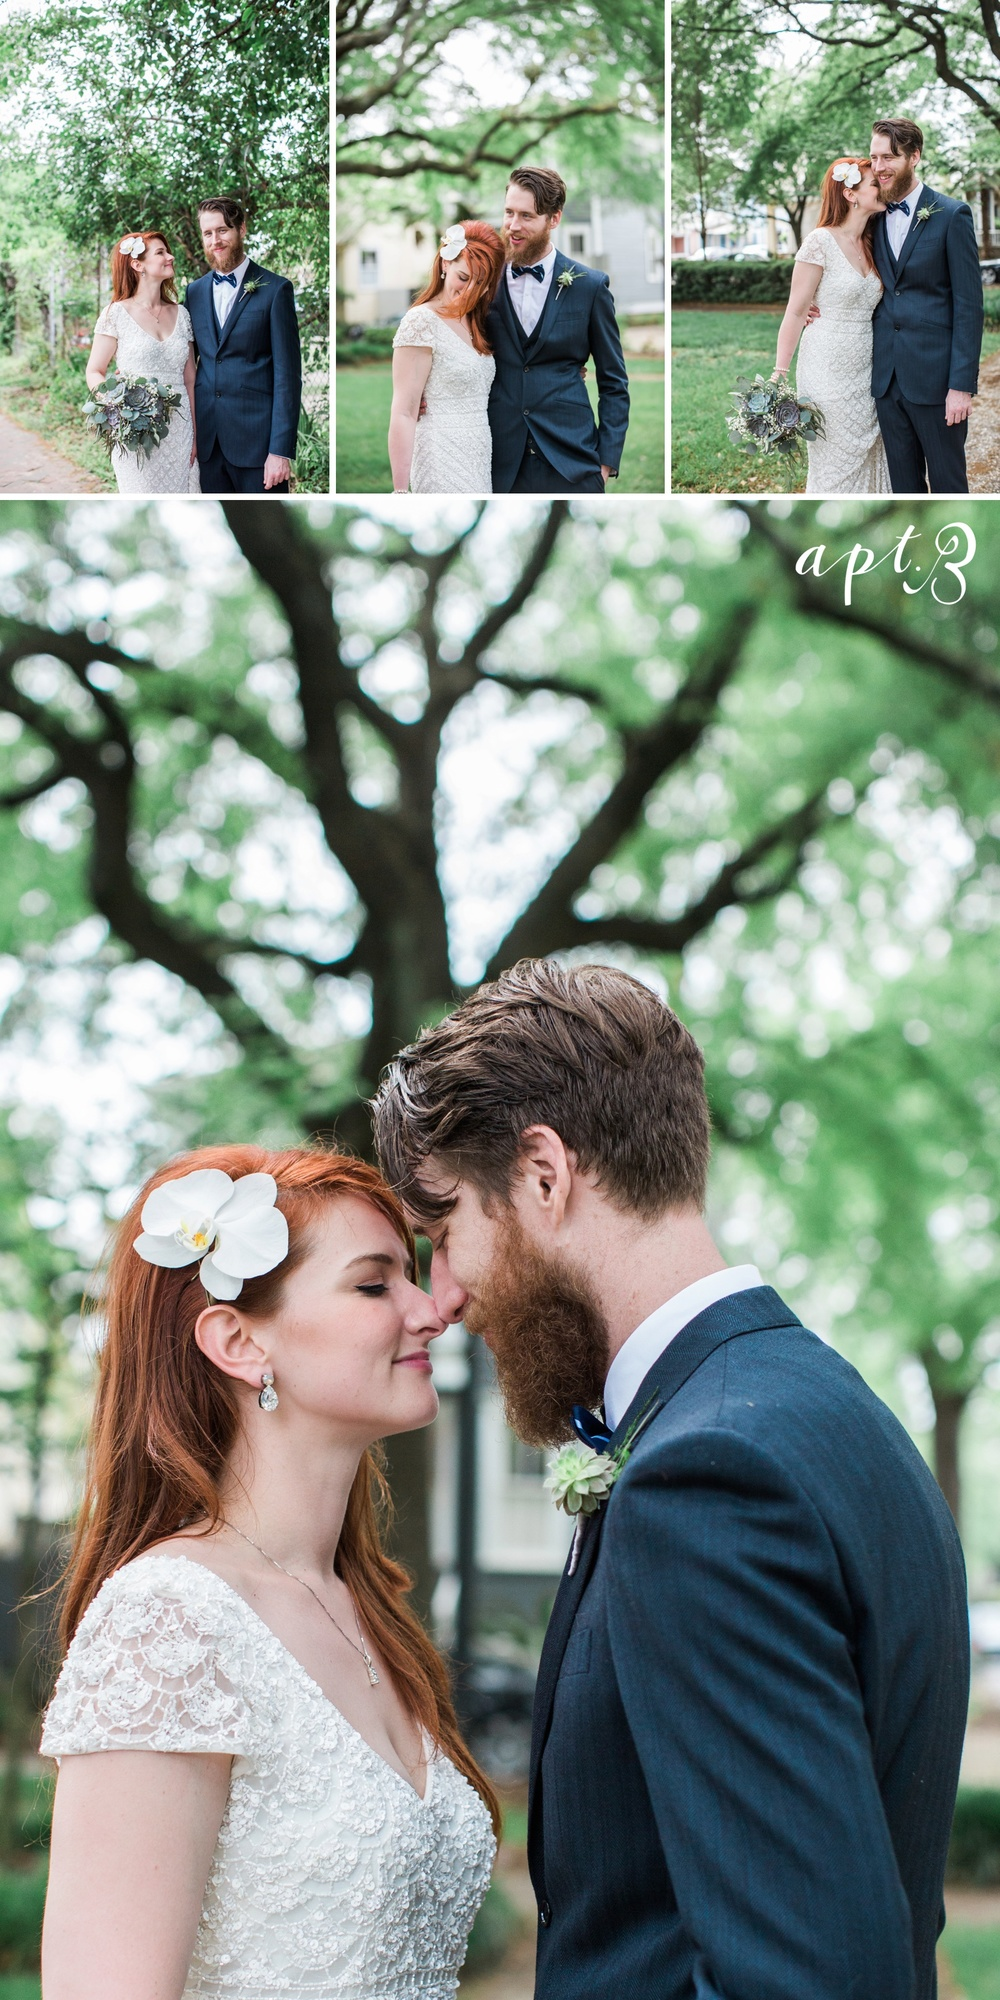 AptBPhotography_SavannahWedding_ChaBella-62.jpg